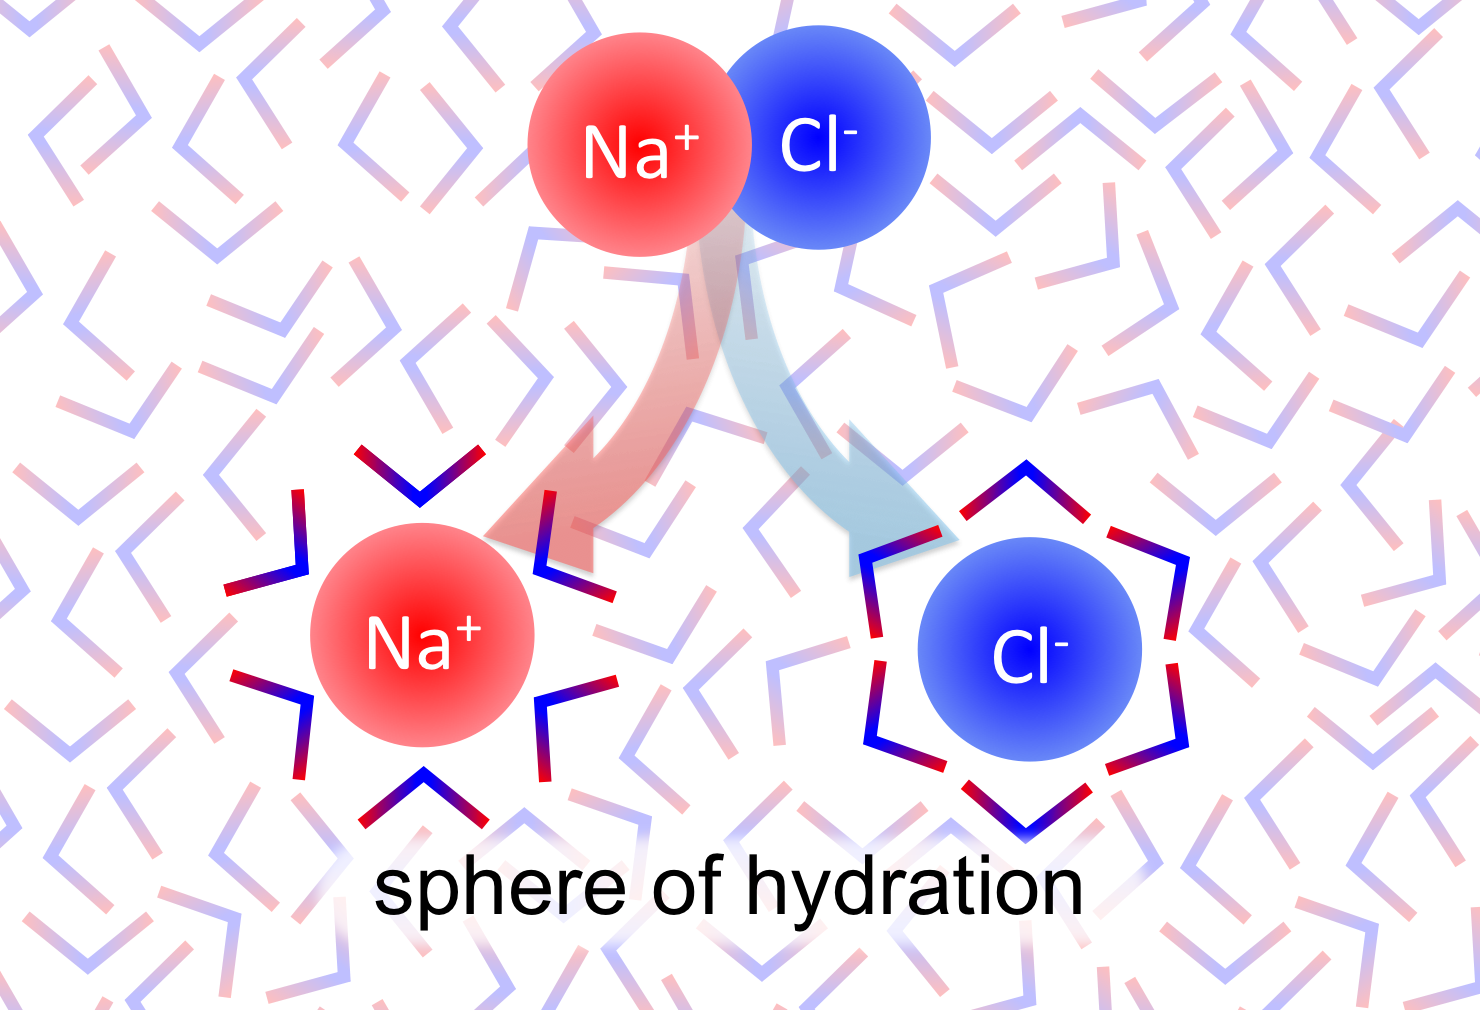 Figure 17.   Water as a solvent.  Water's partial charges interact with ionic compounds (i.e. NaCl) and partial charges of polar molecules. Water can disassociate atoms in ionic molecules, and the partial charges form a stable structure surround the ions, known as a sphere of hydration.